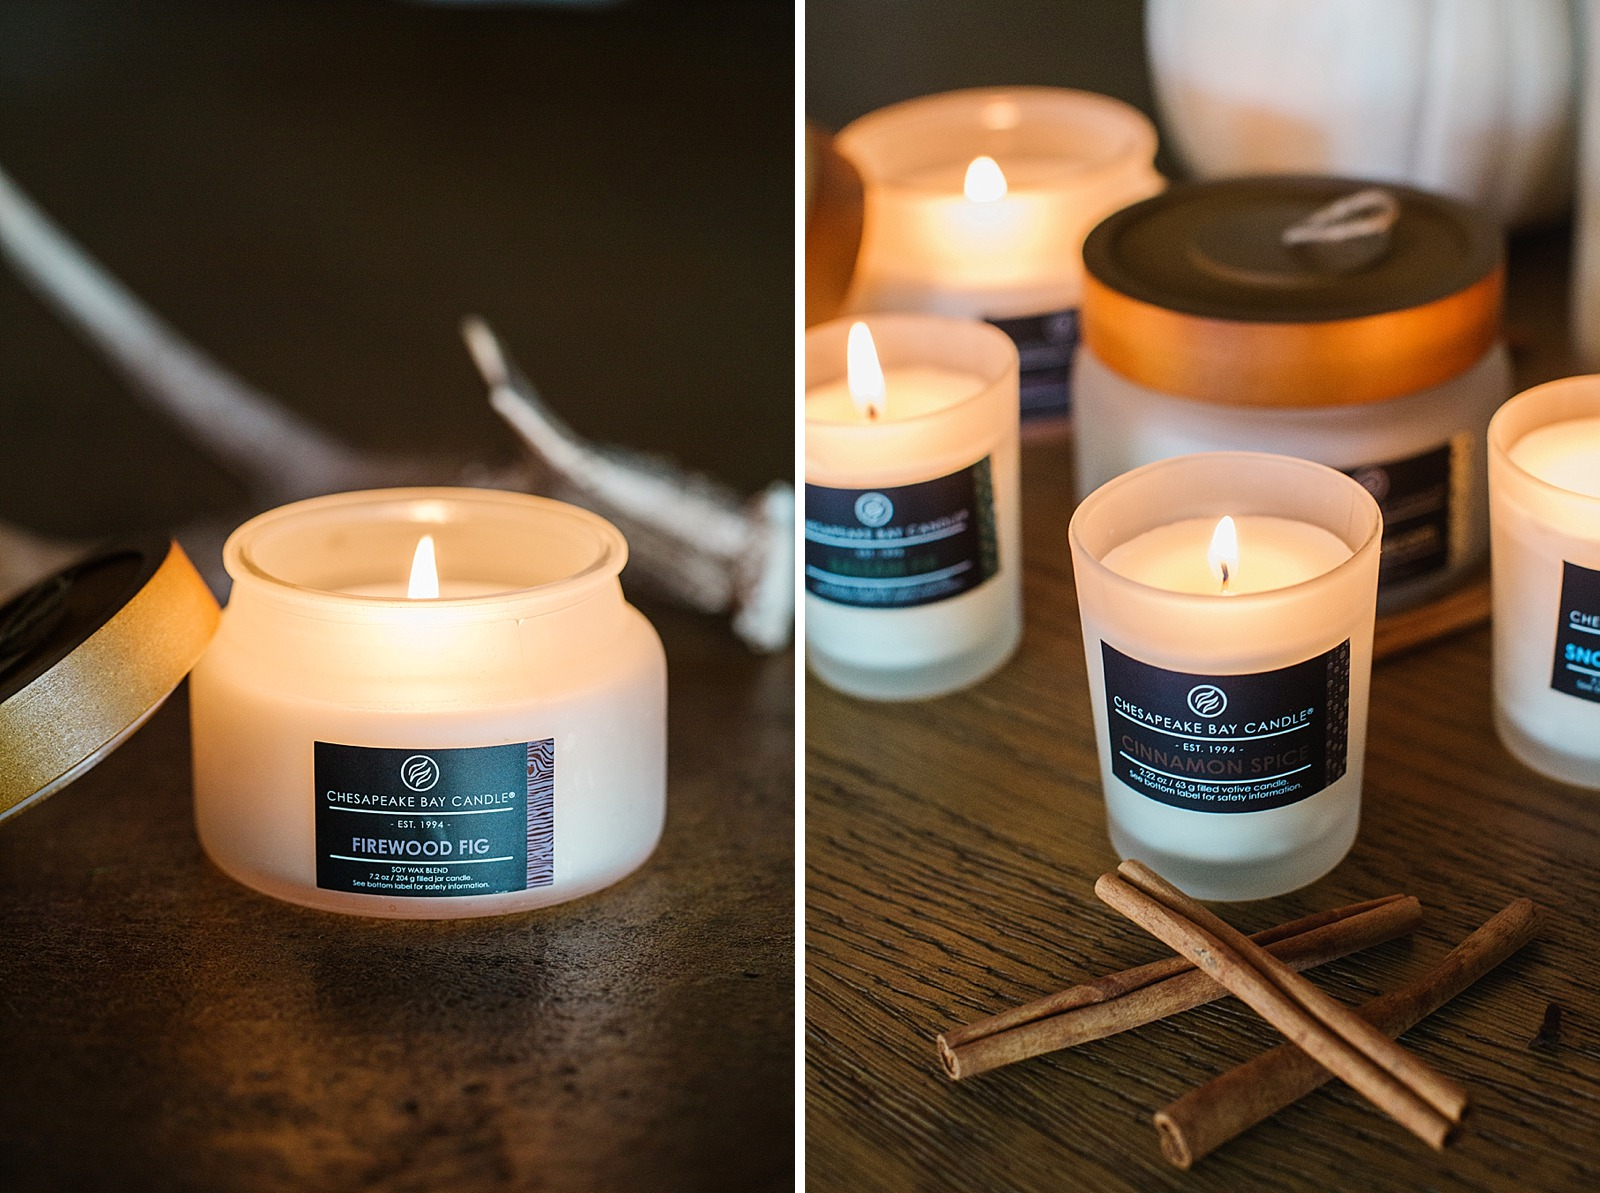 chesapeake-bay-candle-heritage-collection-best-fall-winter-holiday-candles-soy-mix-essential-oils-4